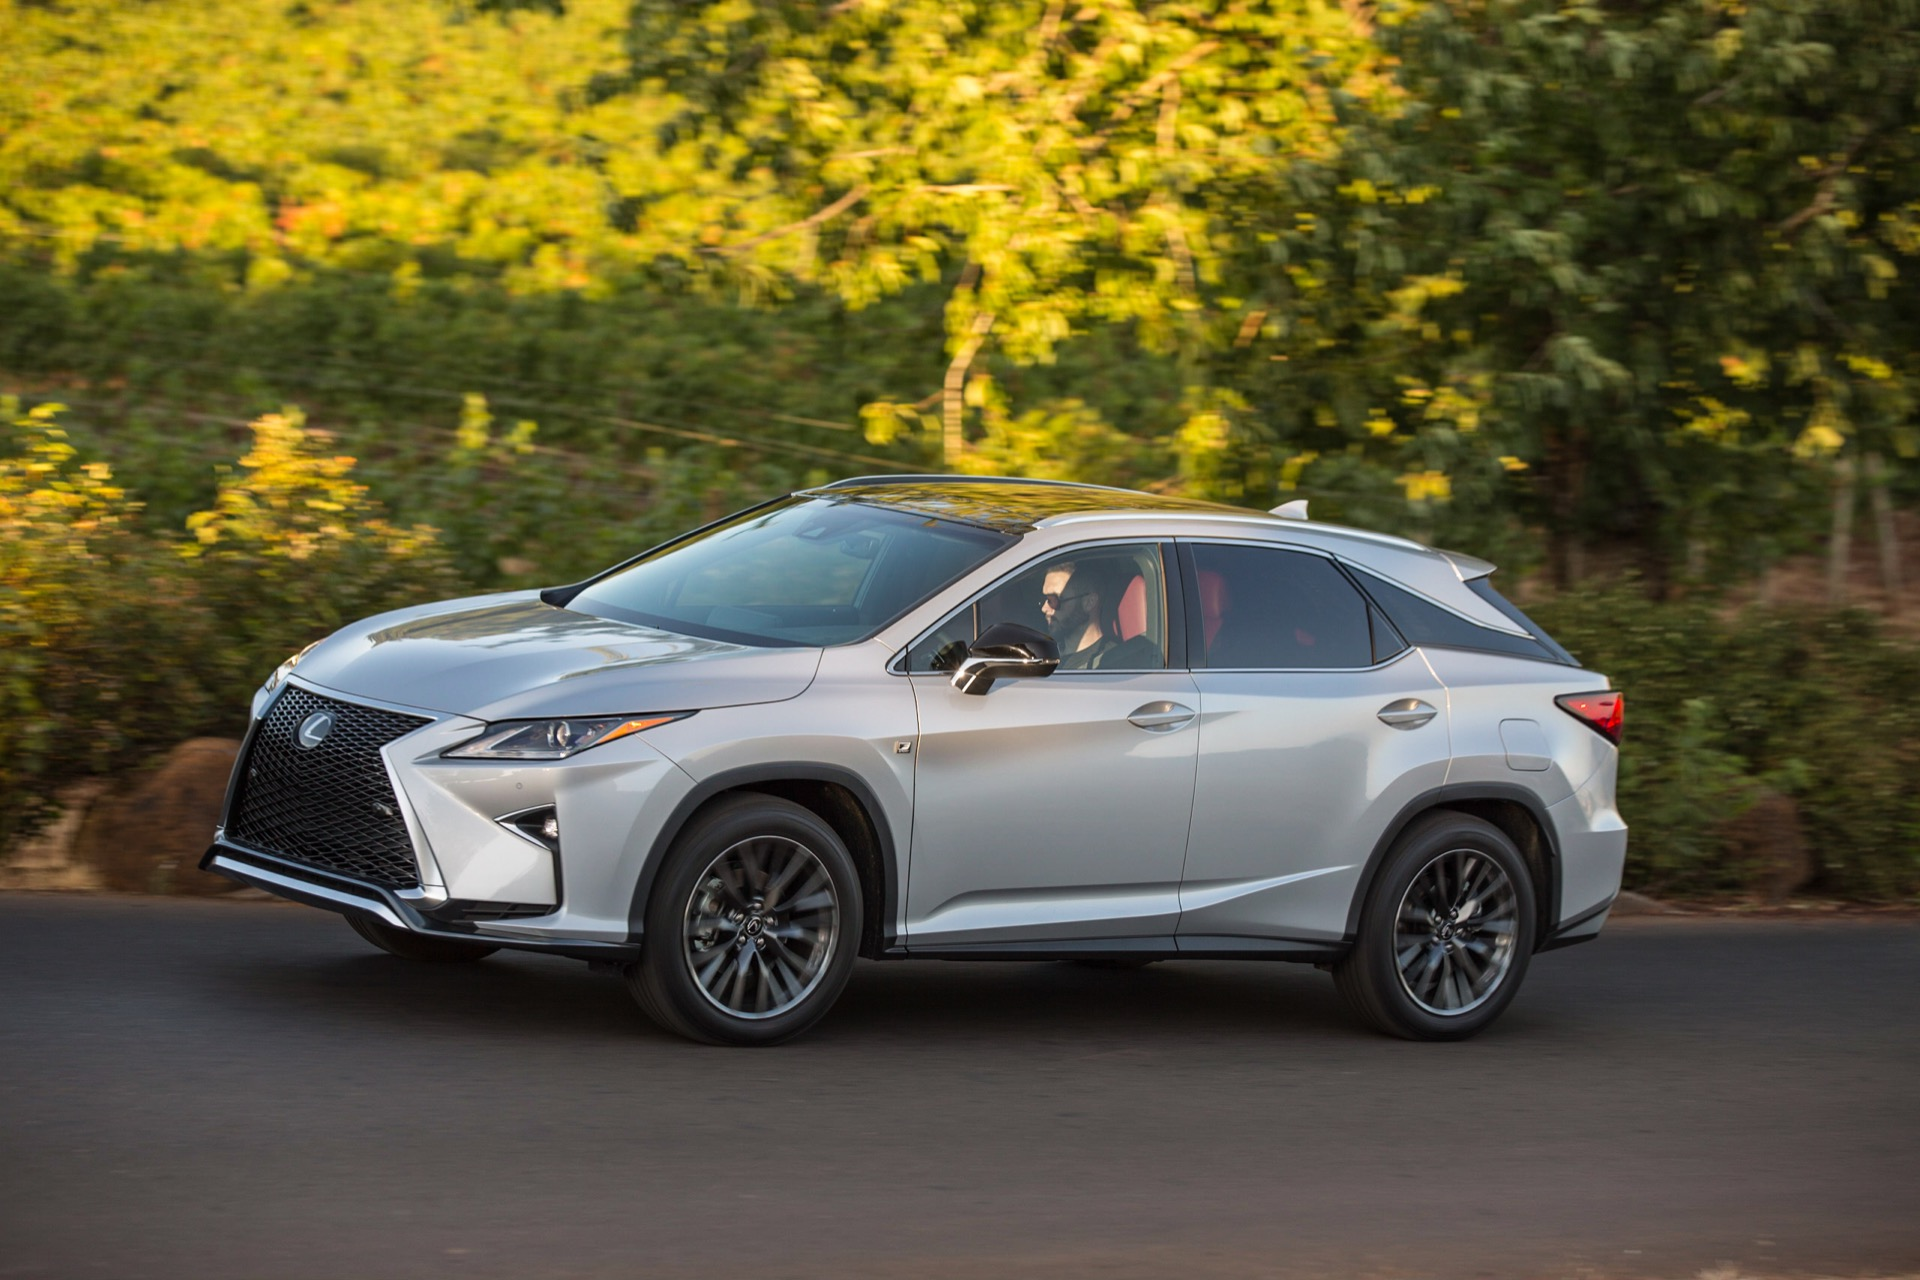 2018 lexus rx 350 car photos catalog 2018